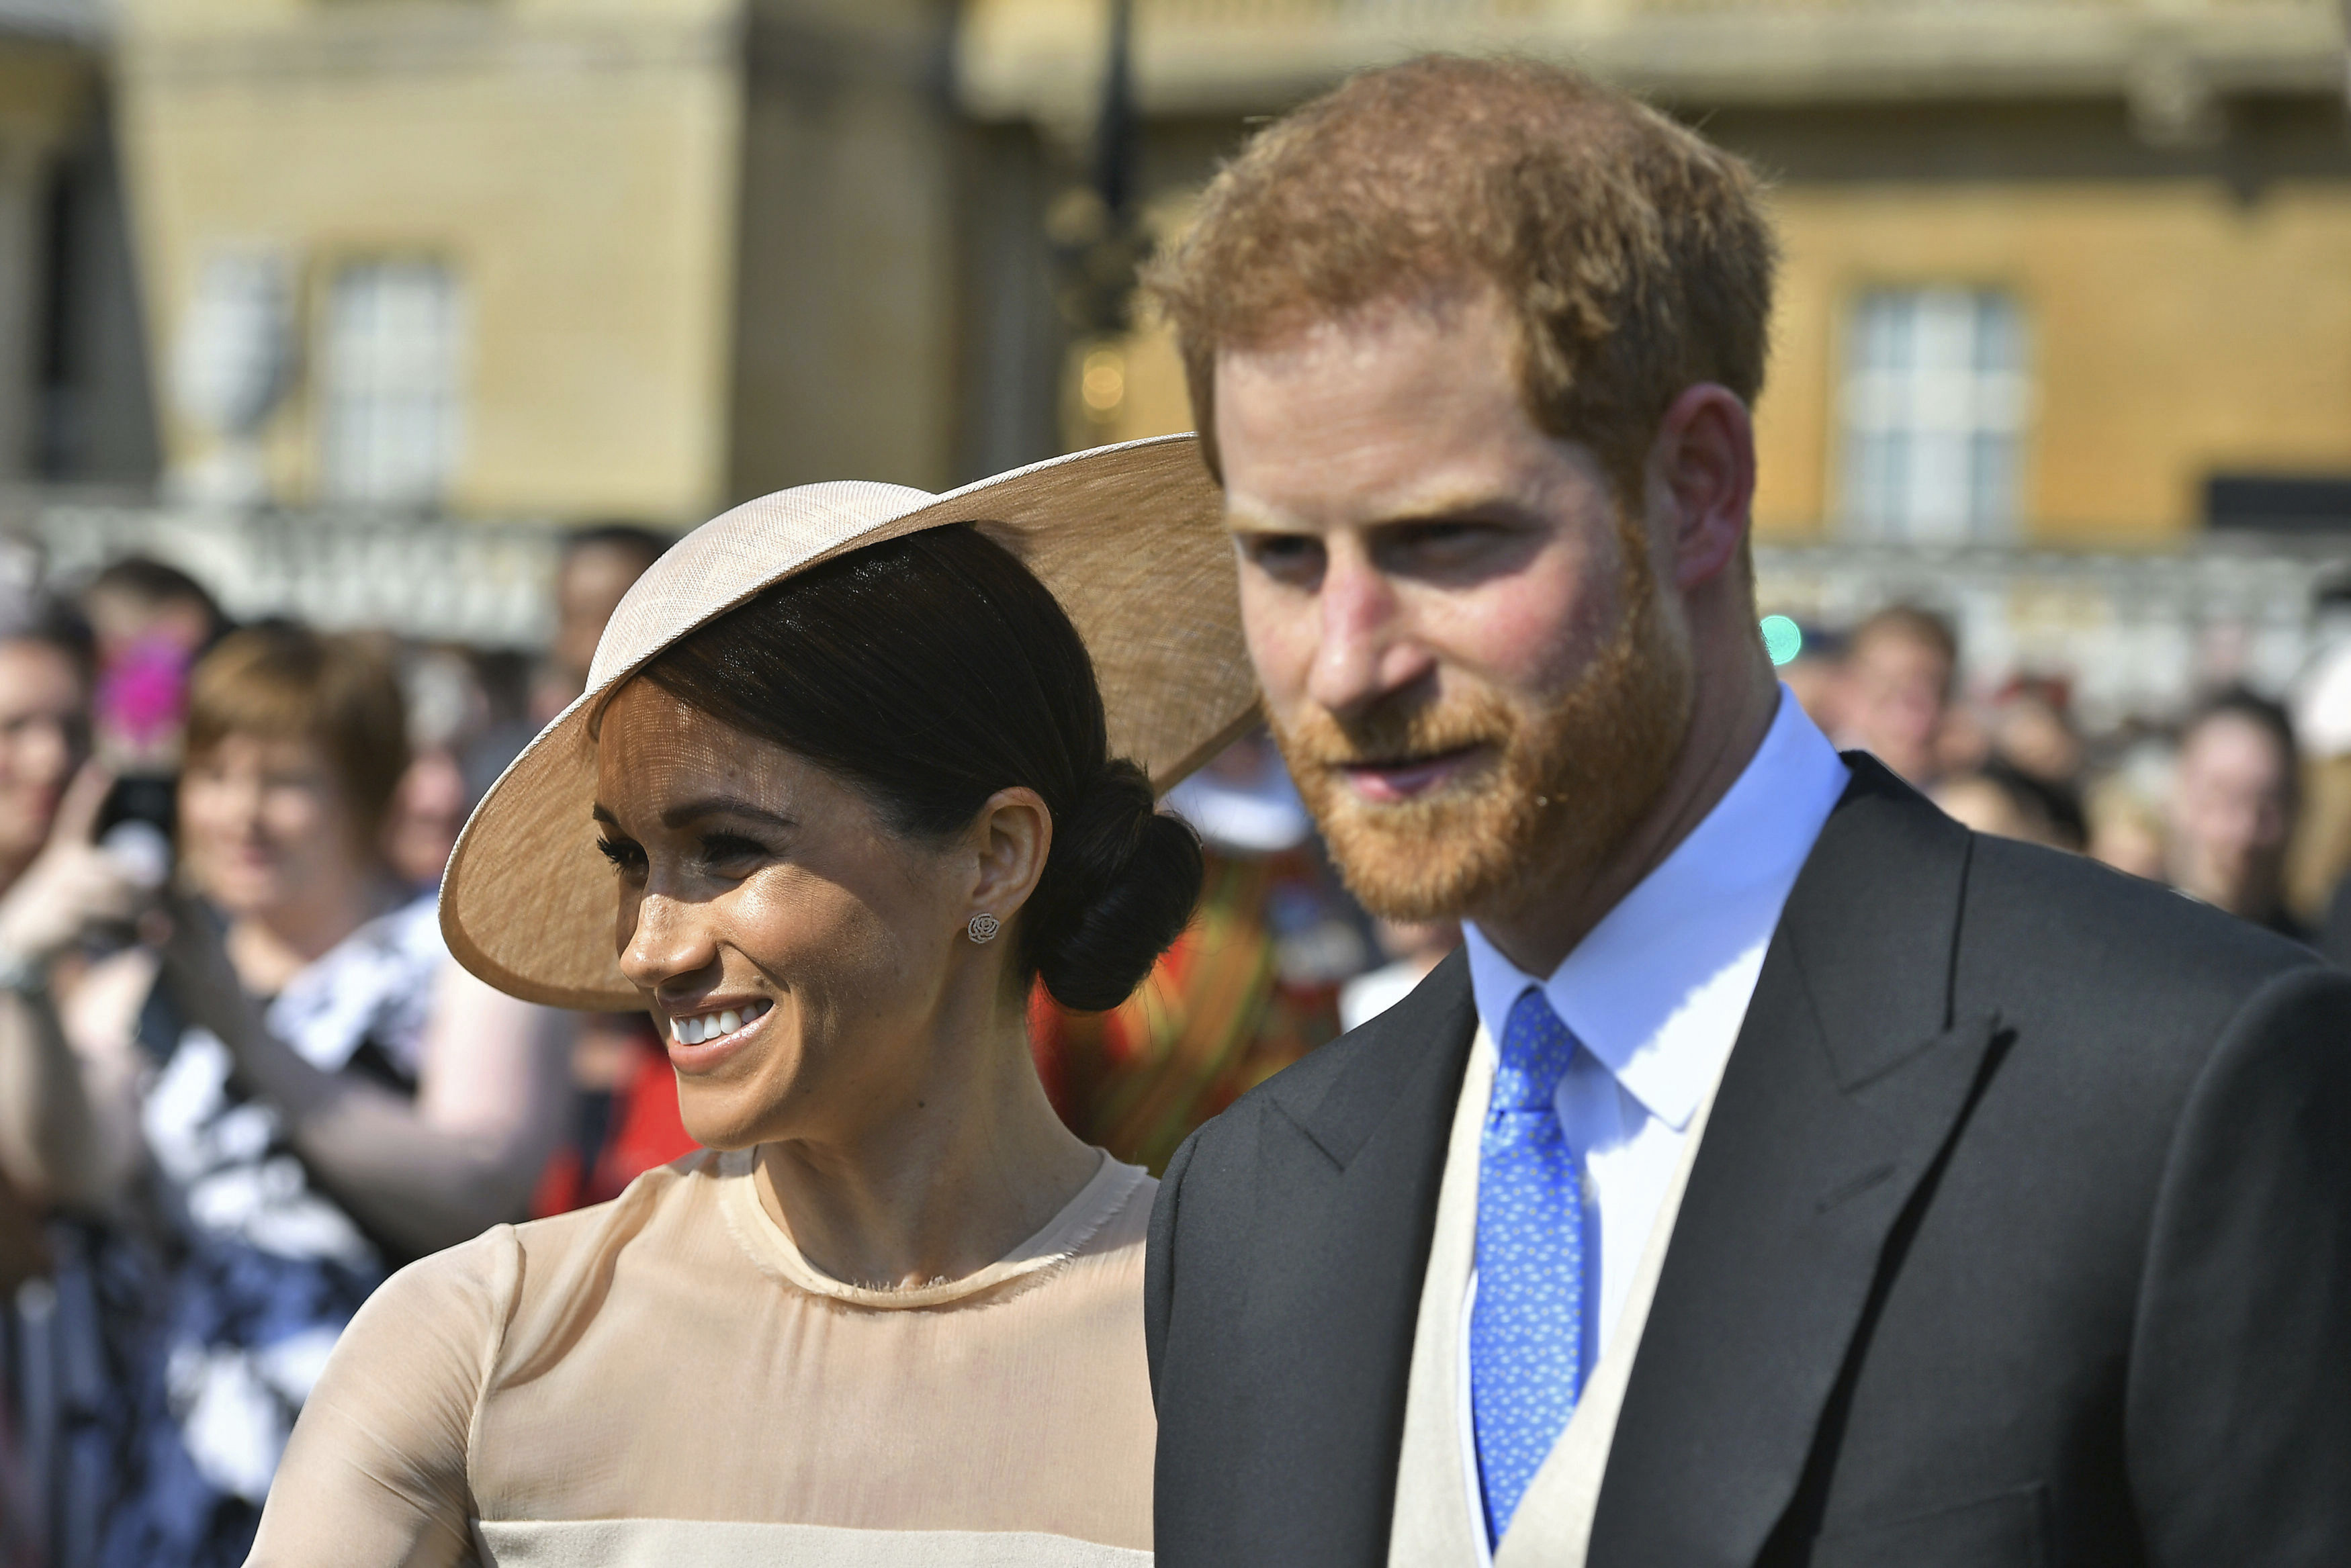 <div class='meta'><div class='origin-logo' data-origin='none'></div><span class='caption-text' data-credit='Dominic Lipinski/Pool Photo via AP'>Meghan, the Duchess of Sussex walks with her husband, Prince Harry as they attend a garden party at Buckingham Palace in London, Tuesday May 22, 2018.</span></div>